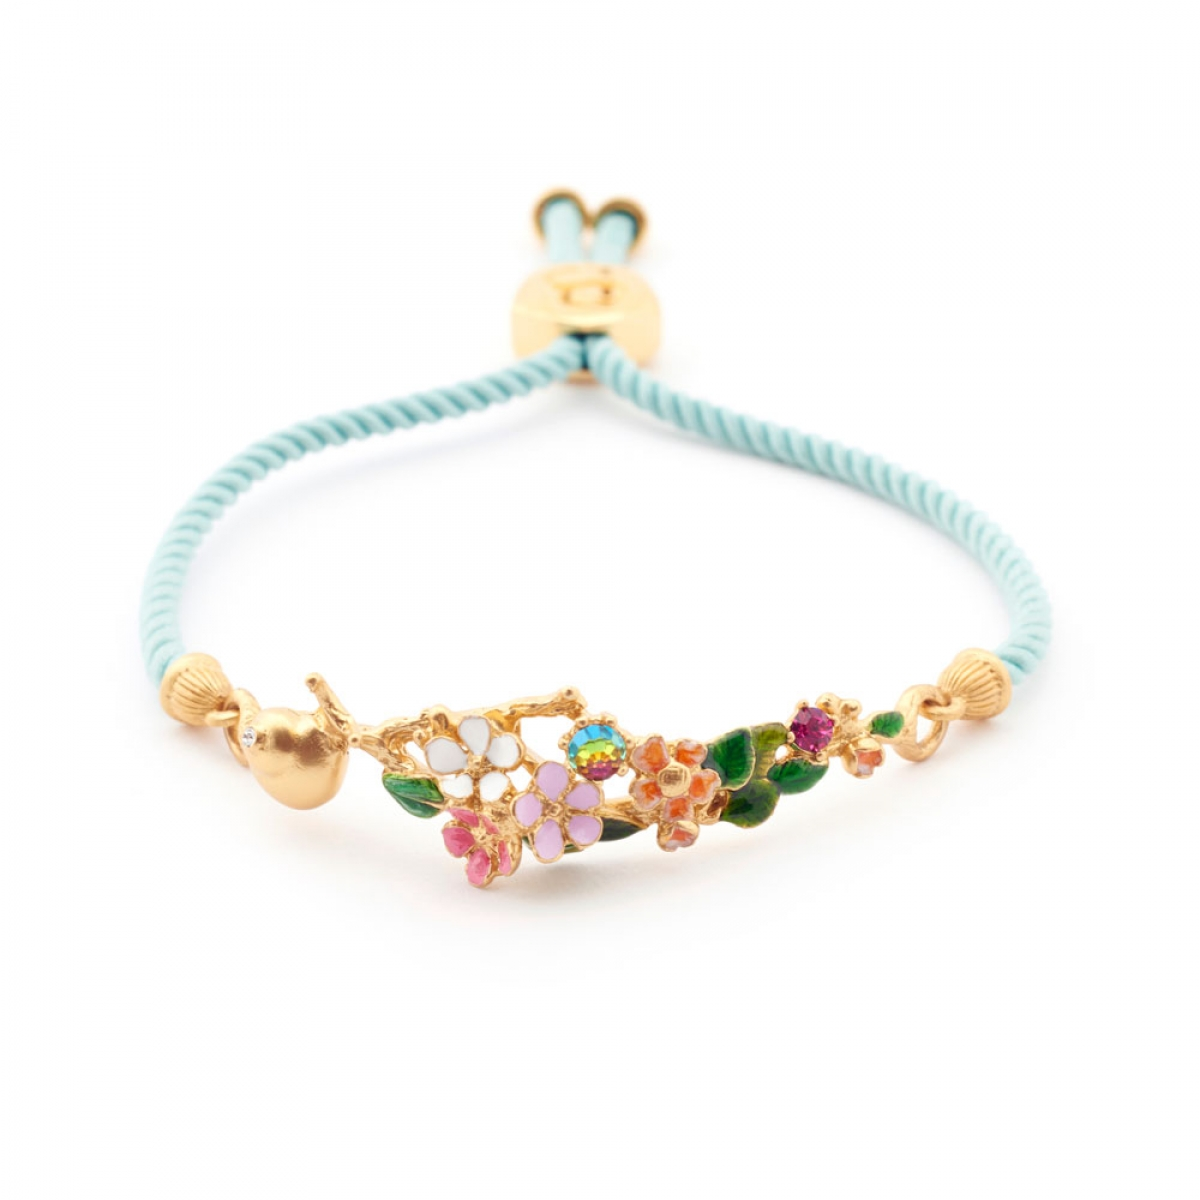 Snail Crystal Friendship Bracelet